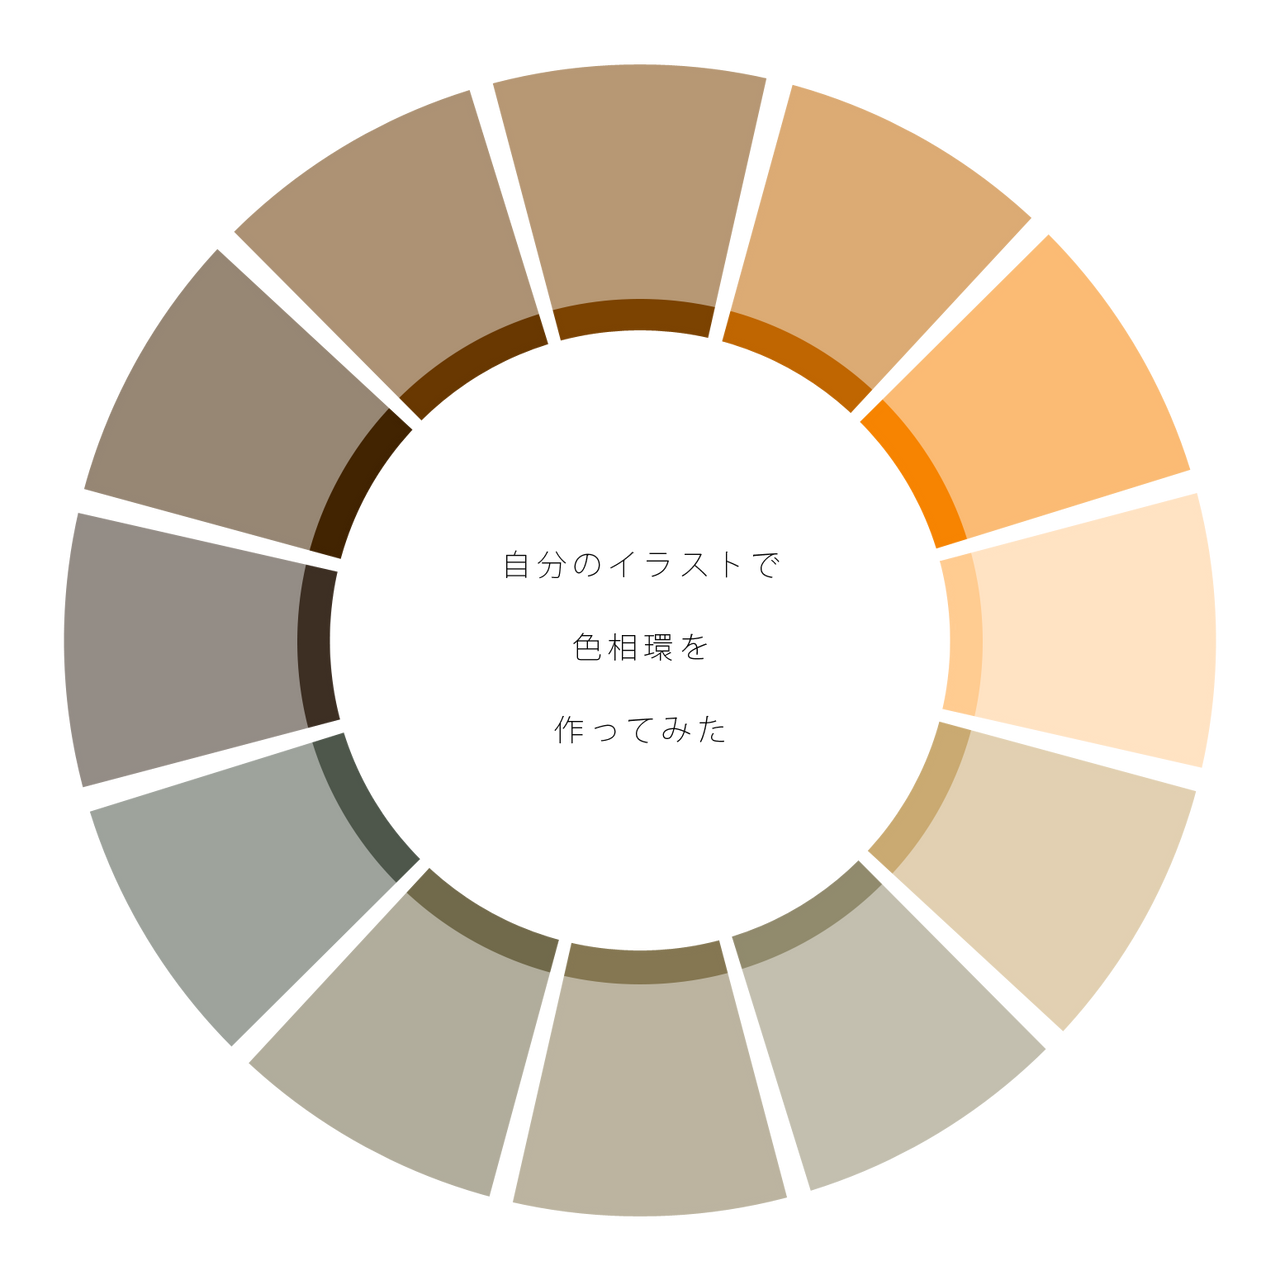 Earthy Colors earth tones color wheel meme (blank)mahohaku on deviantart